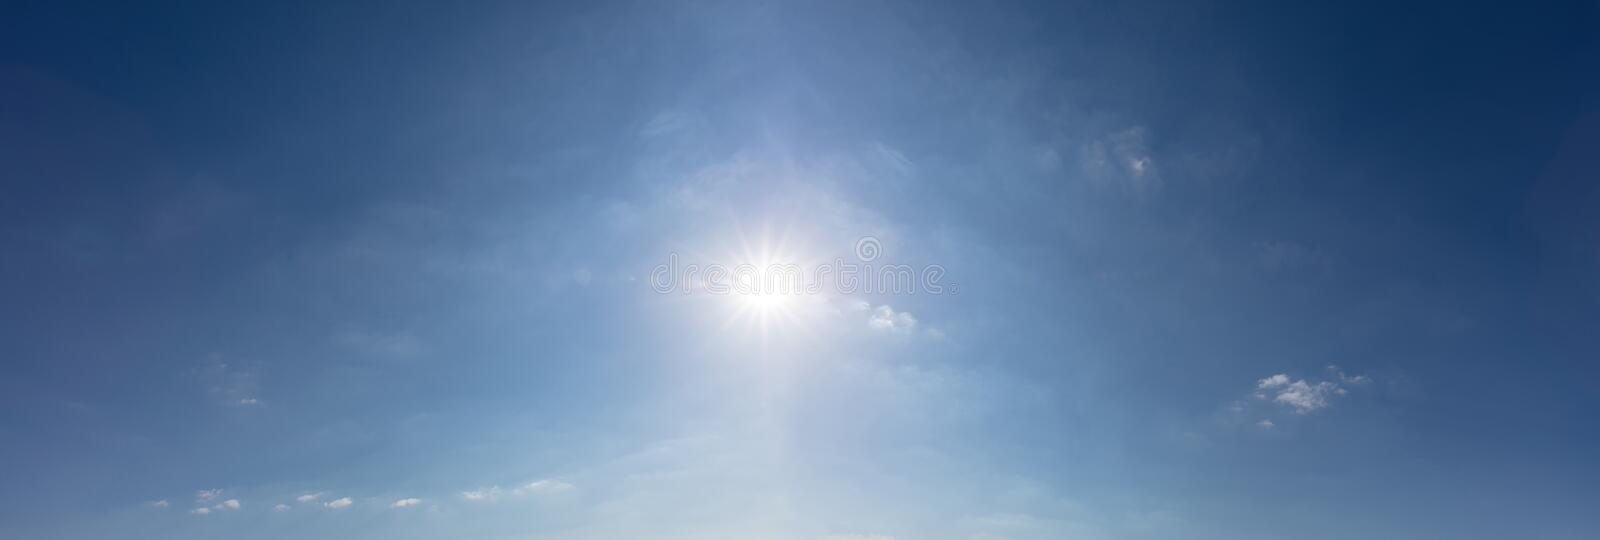 Blue sky with sun as a panorama background royalty free stock image